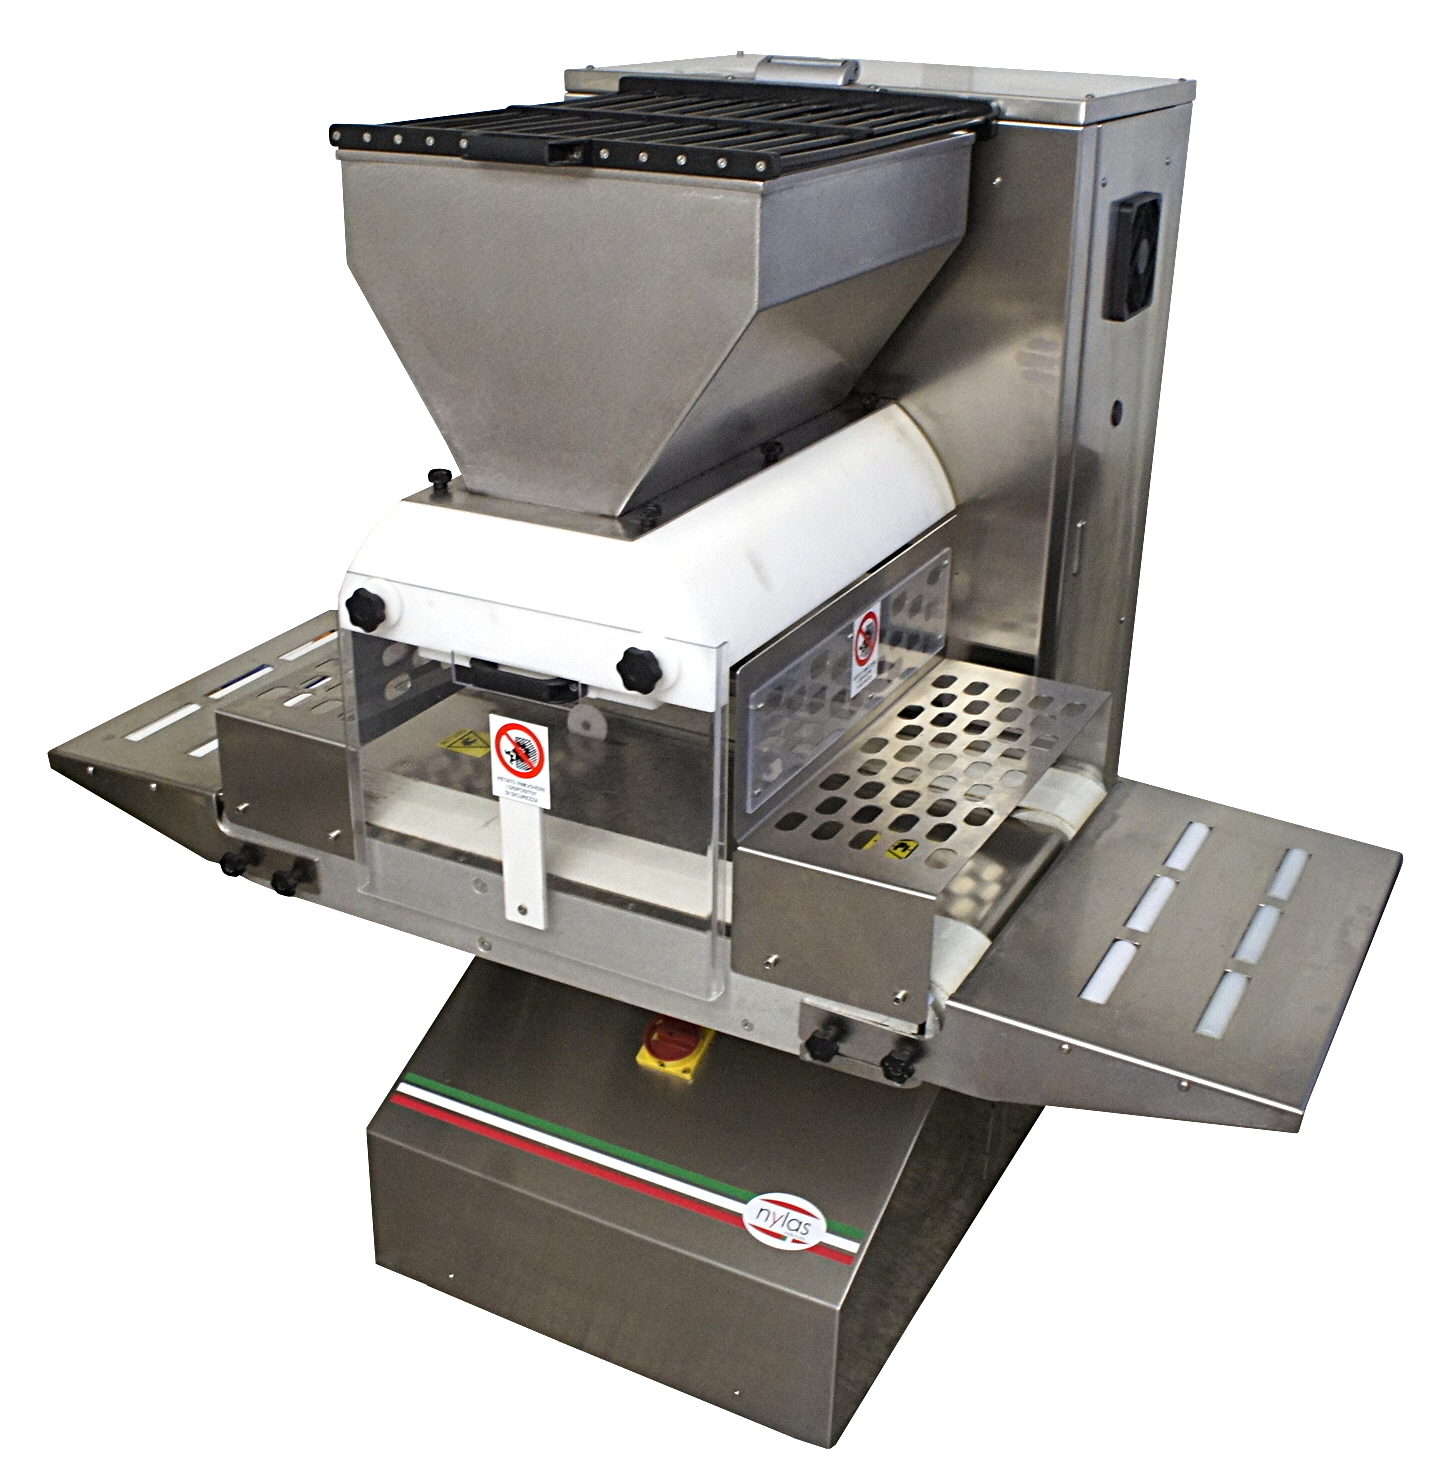 SECOND HAND BISCUITS DEPOSITOR: SMART 400 with wire cut and rotary systems for big-medium productions. Contact us for any further information!